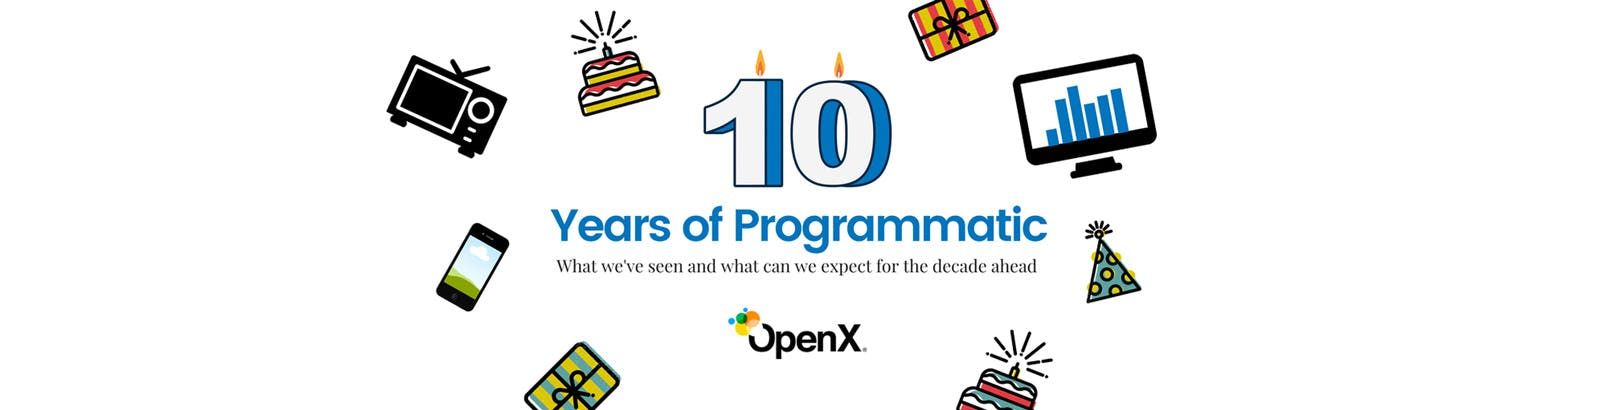 2017 02 16 hero 10 years of programmatic - 10 Years of Programmatic: What We've Seen and What We Can Expect